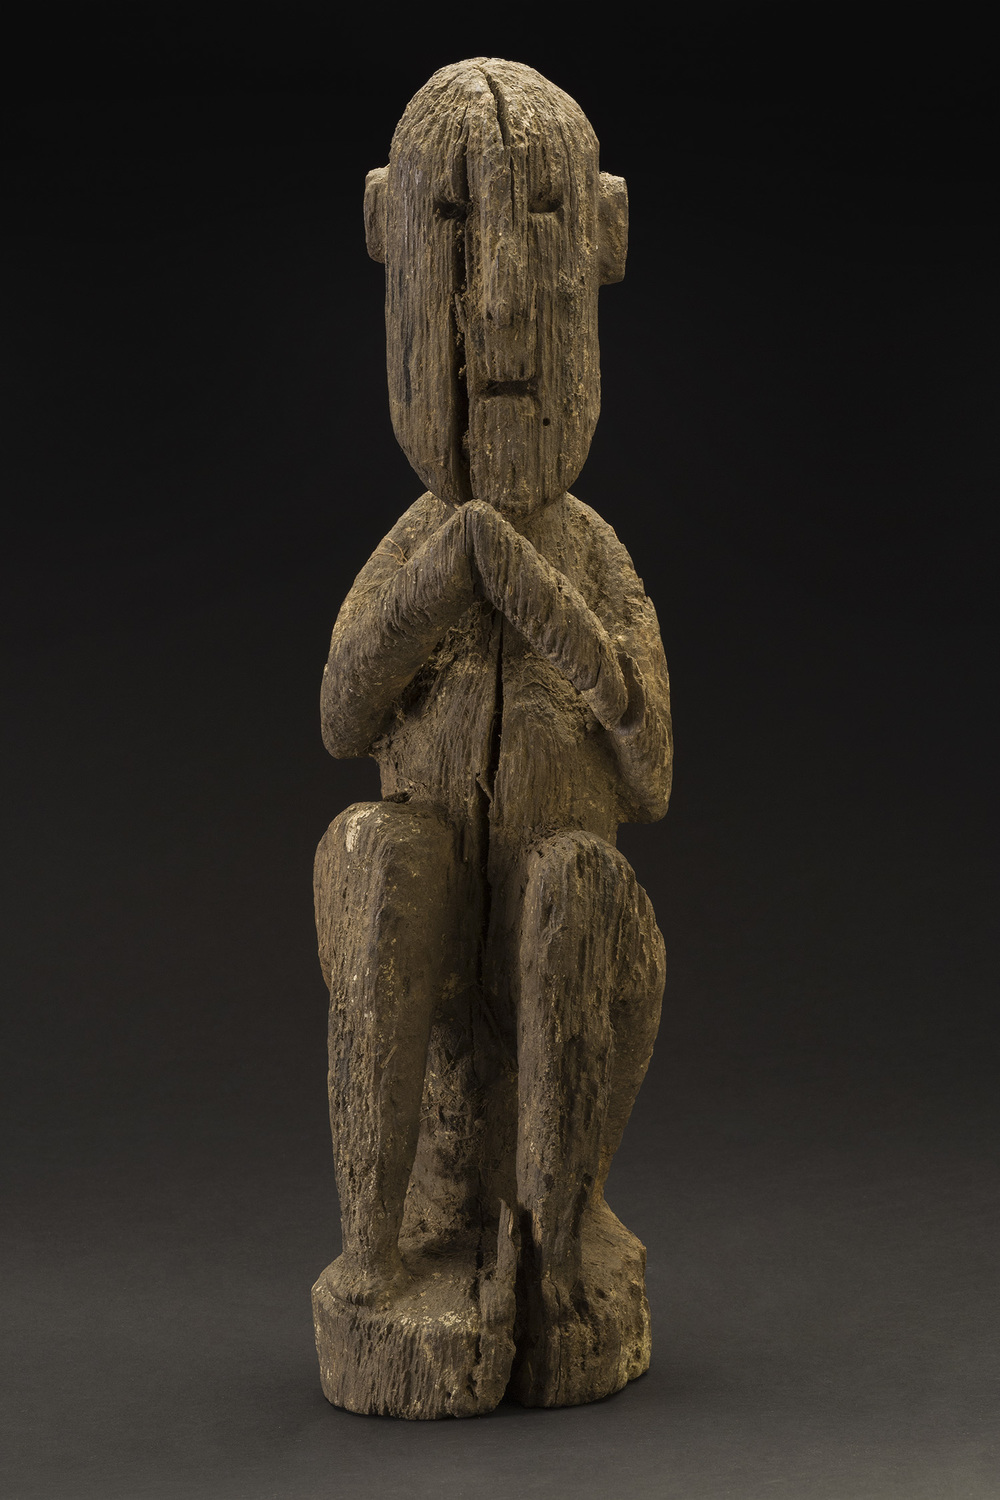 Nepal    West Nepal Votive Figure  , mid. 20th c. Wood 17.5 x 5 x 4 inches 44.5 x 12.7 x 10.2 cm Nep 53